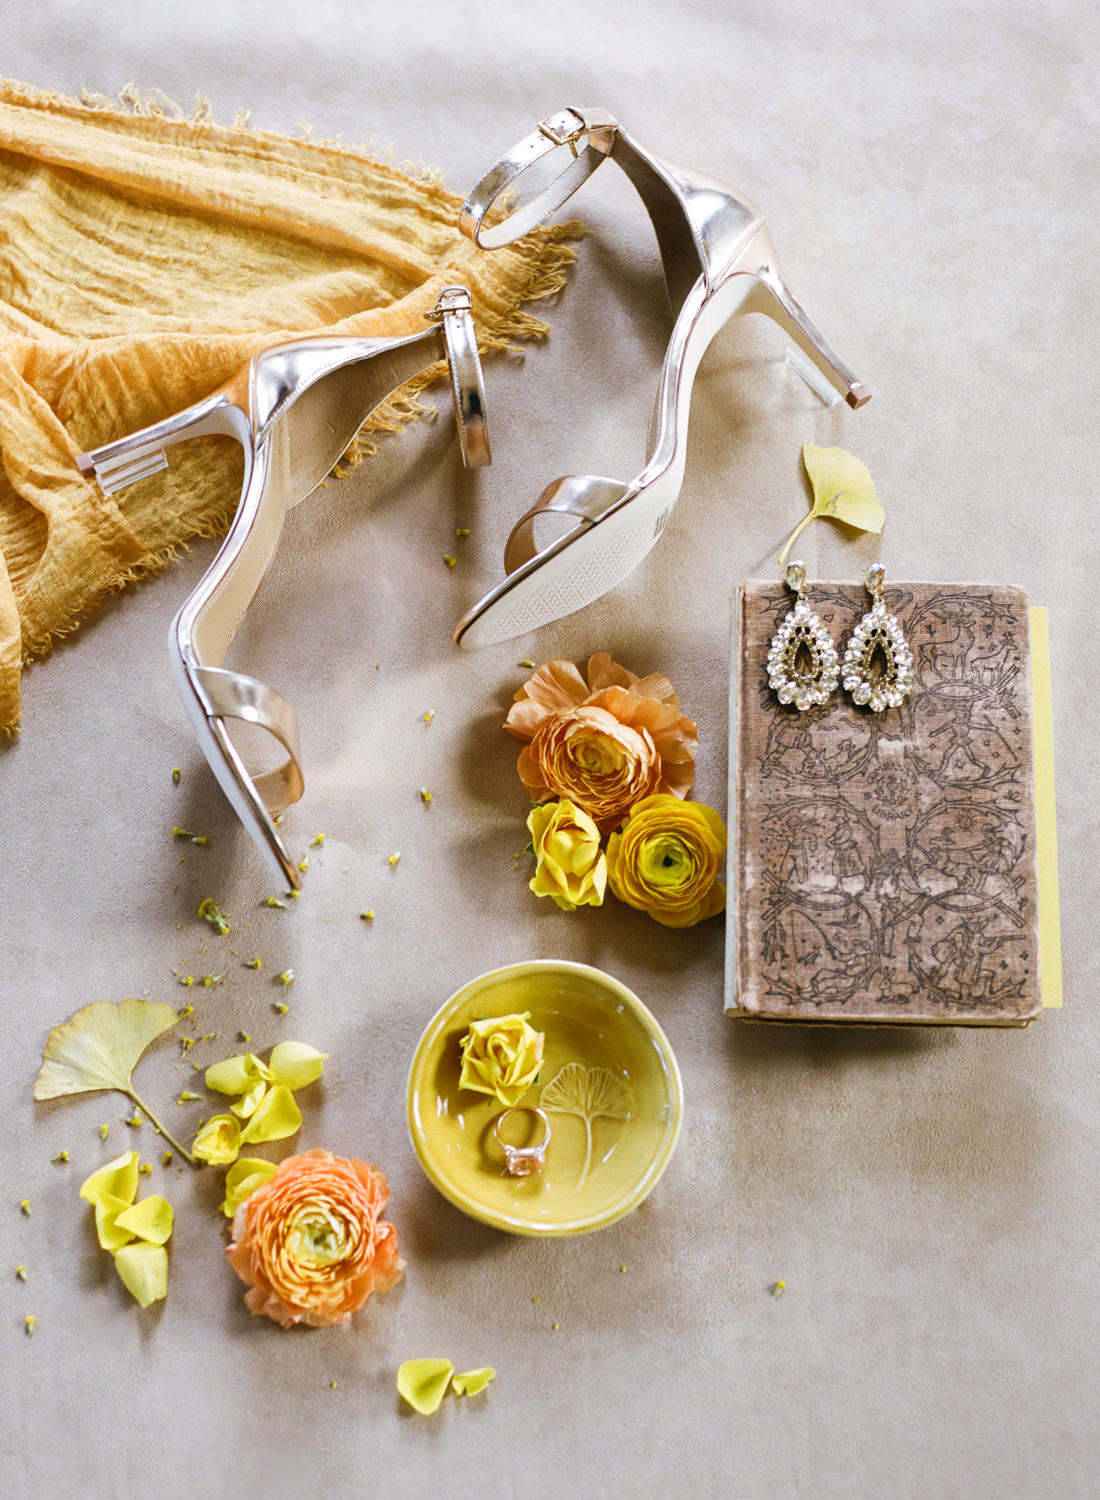 Bridal shoes and jewelry details; St. Louis Wedding Photographer Erica Robnett Photography